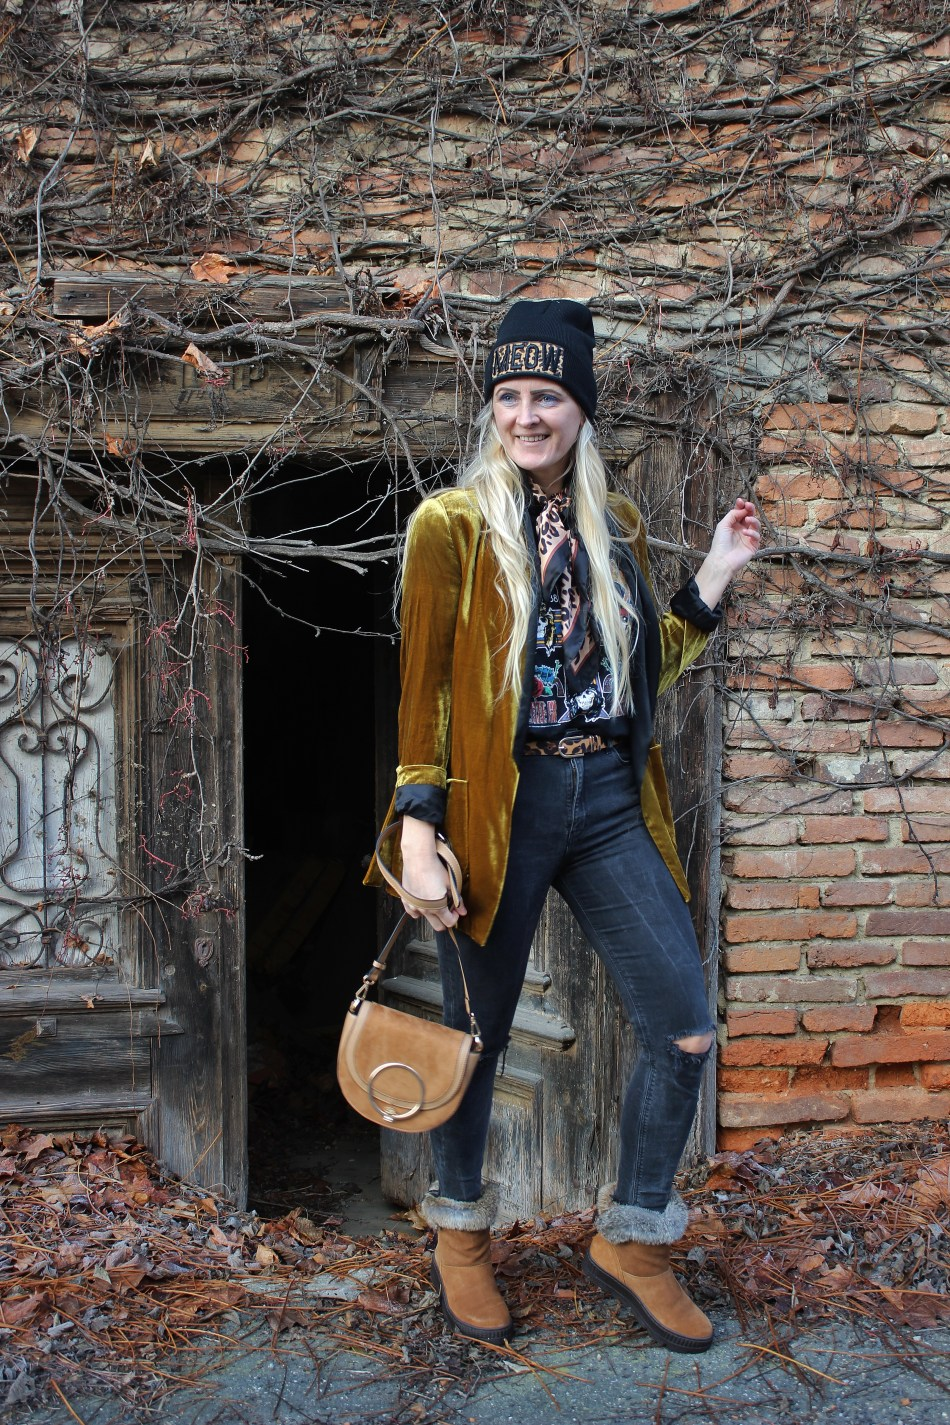 CCC-Shoes-and-Bags-Cognac-Rockig-Rock-carrieslifestyle-Tamara-Prutsch